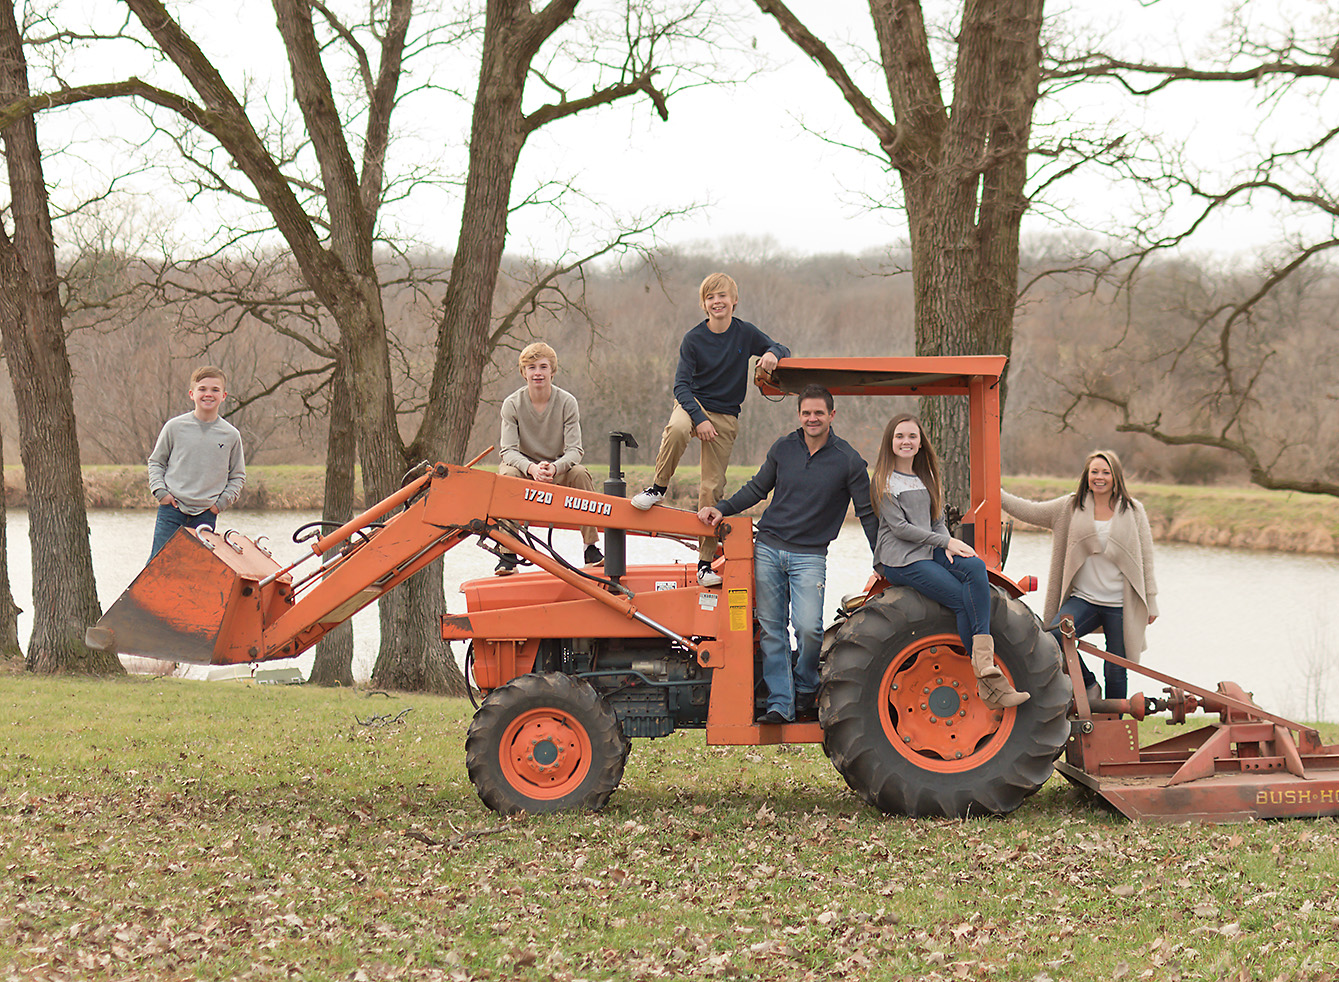 Large family posing on orange tractor in Iowa